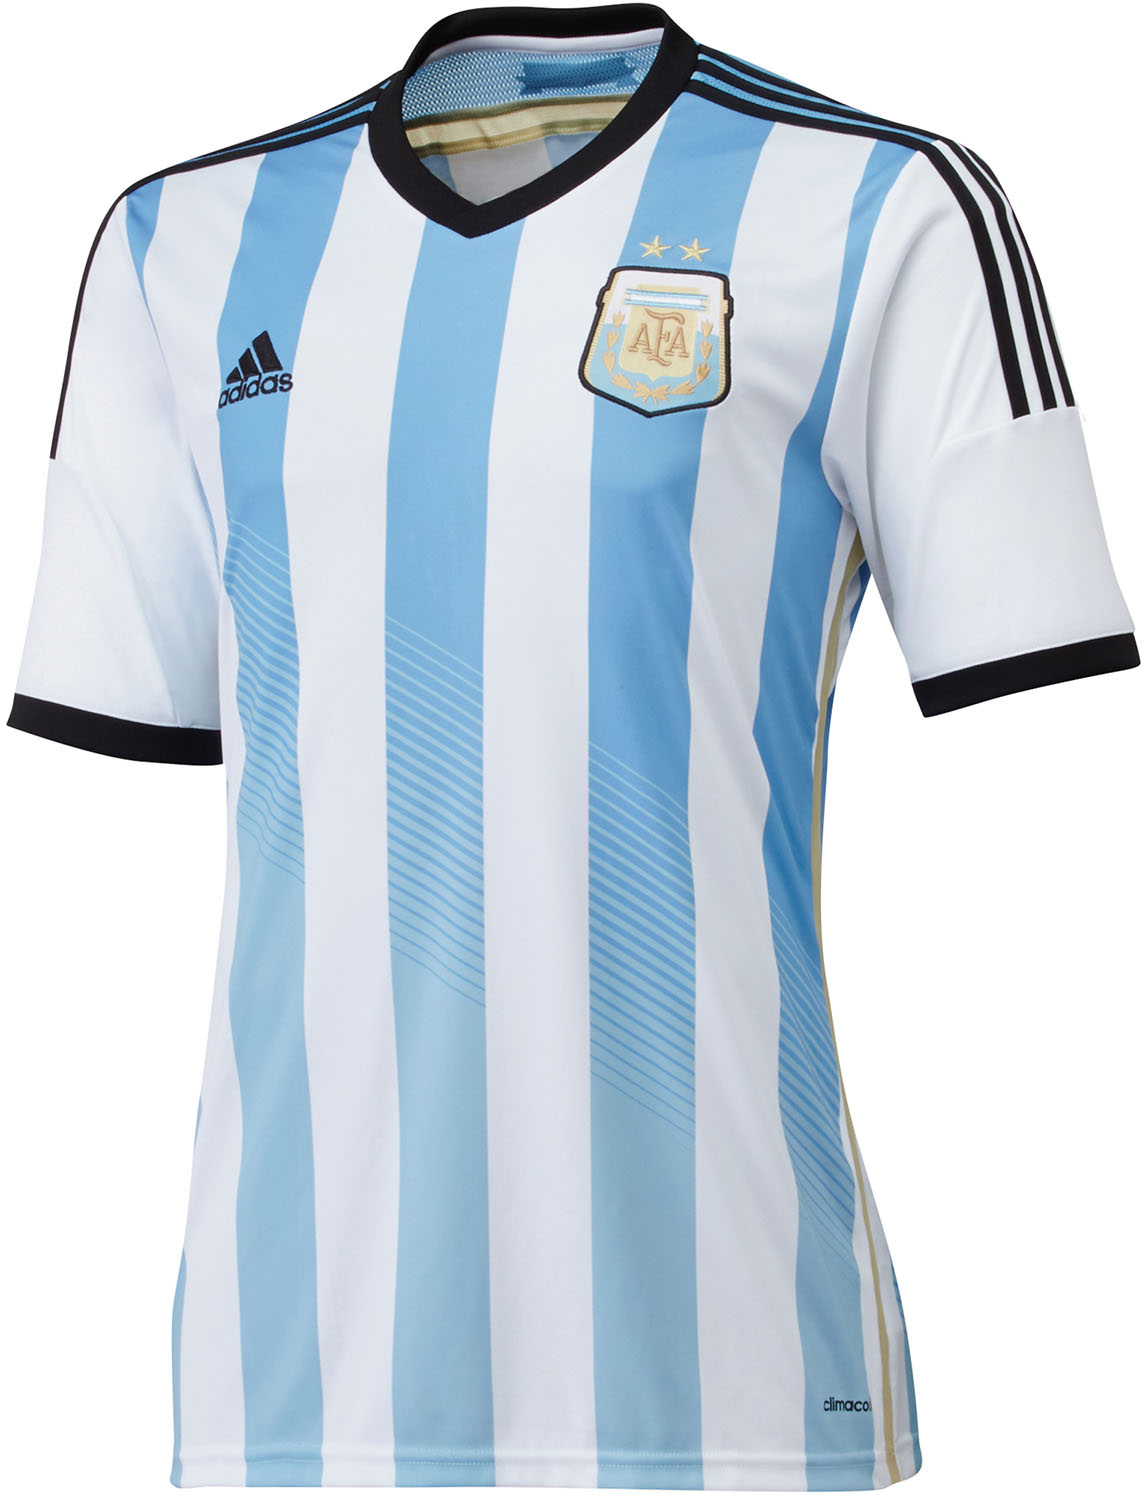 hot sales classic edition cheap soccer jersey: Wear ...